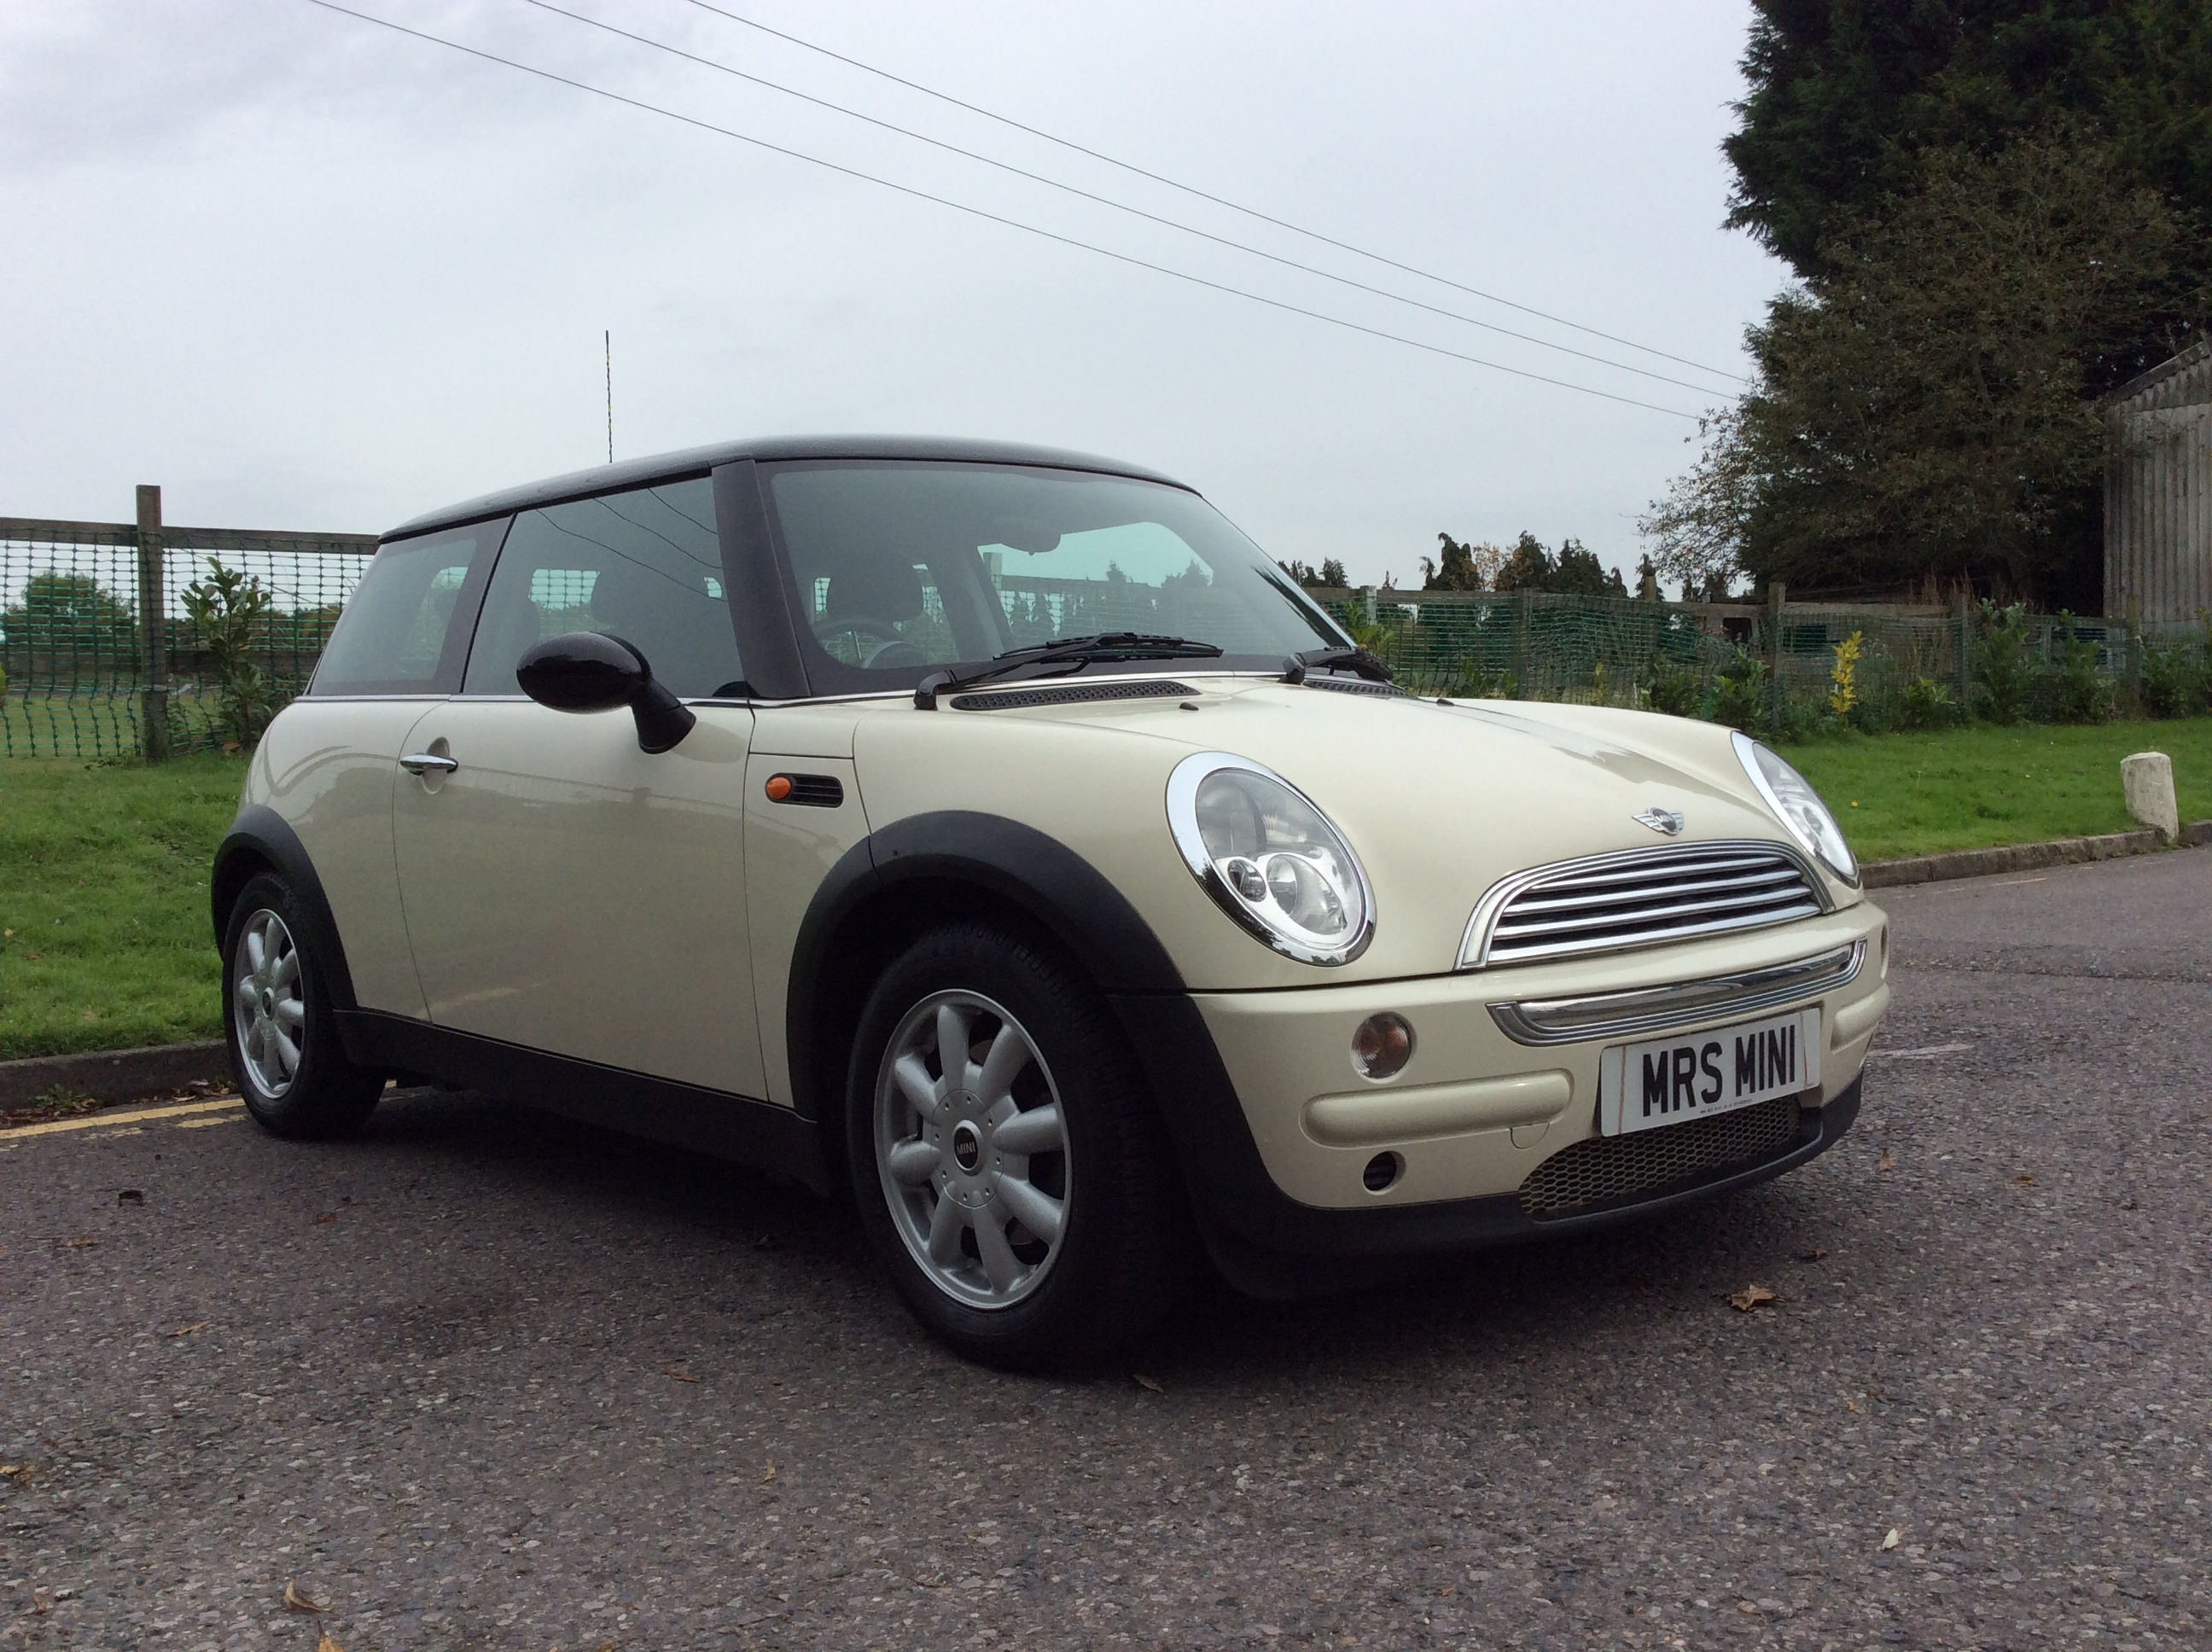 2004 mini cooper in pepper white with low miles 55k mrs mini used mini cars for sale. Black Bedroom Furniture Sets. Home Design Ideas